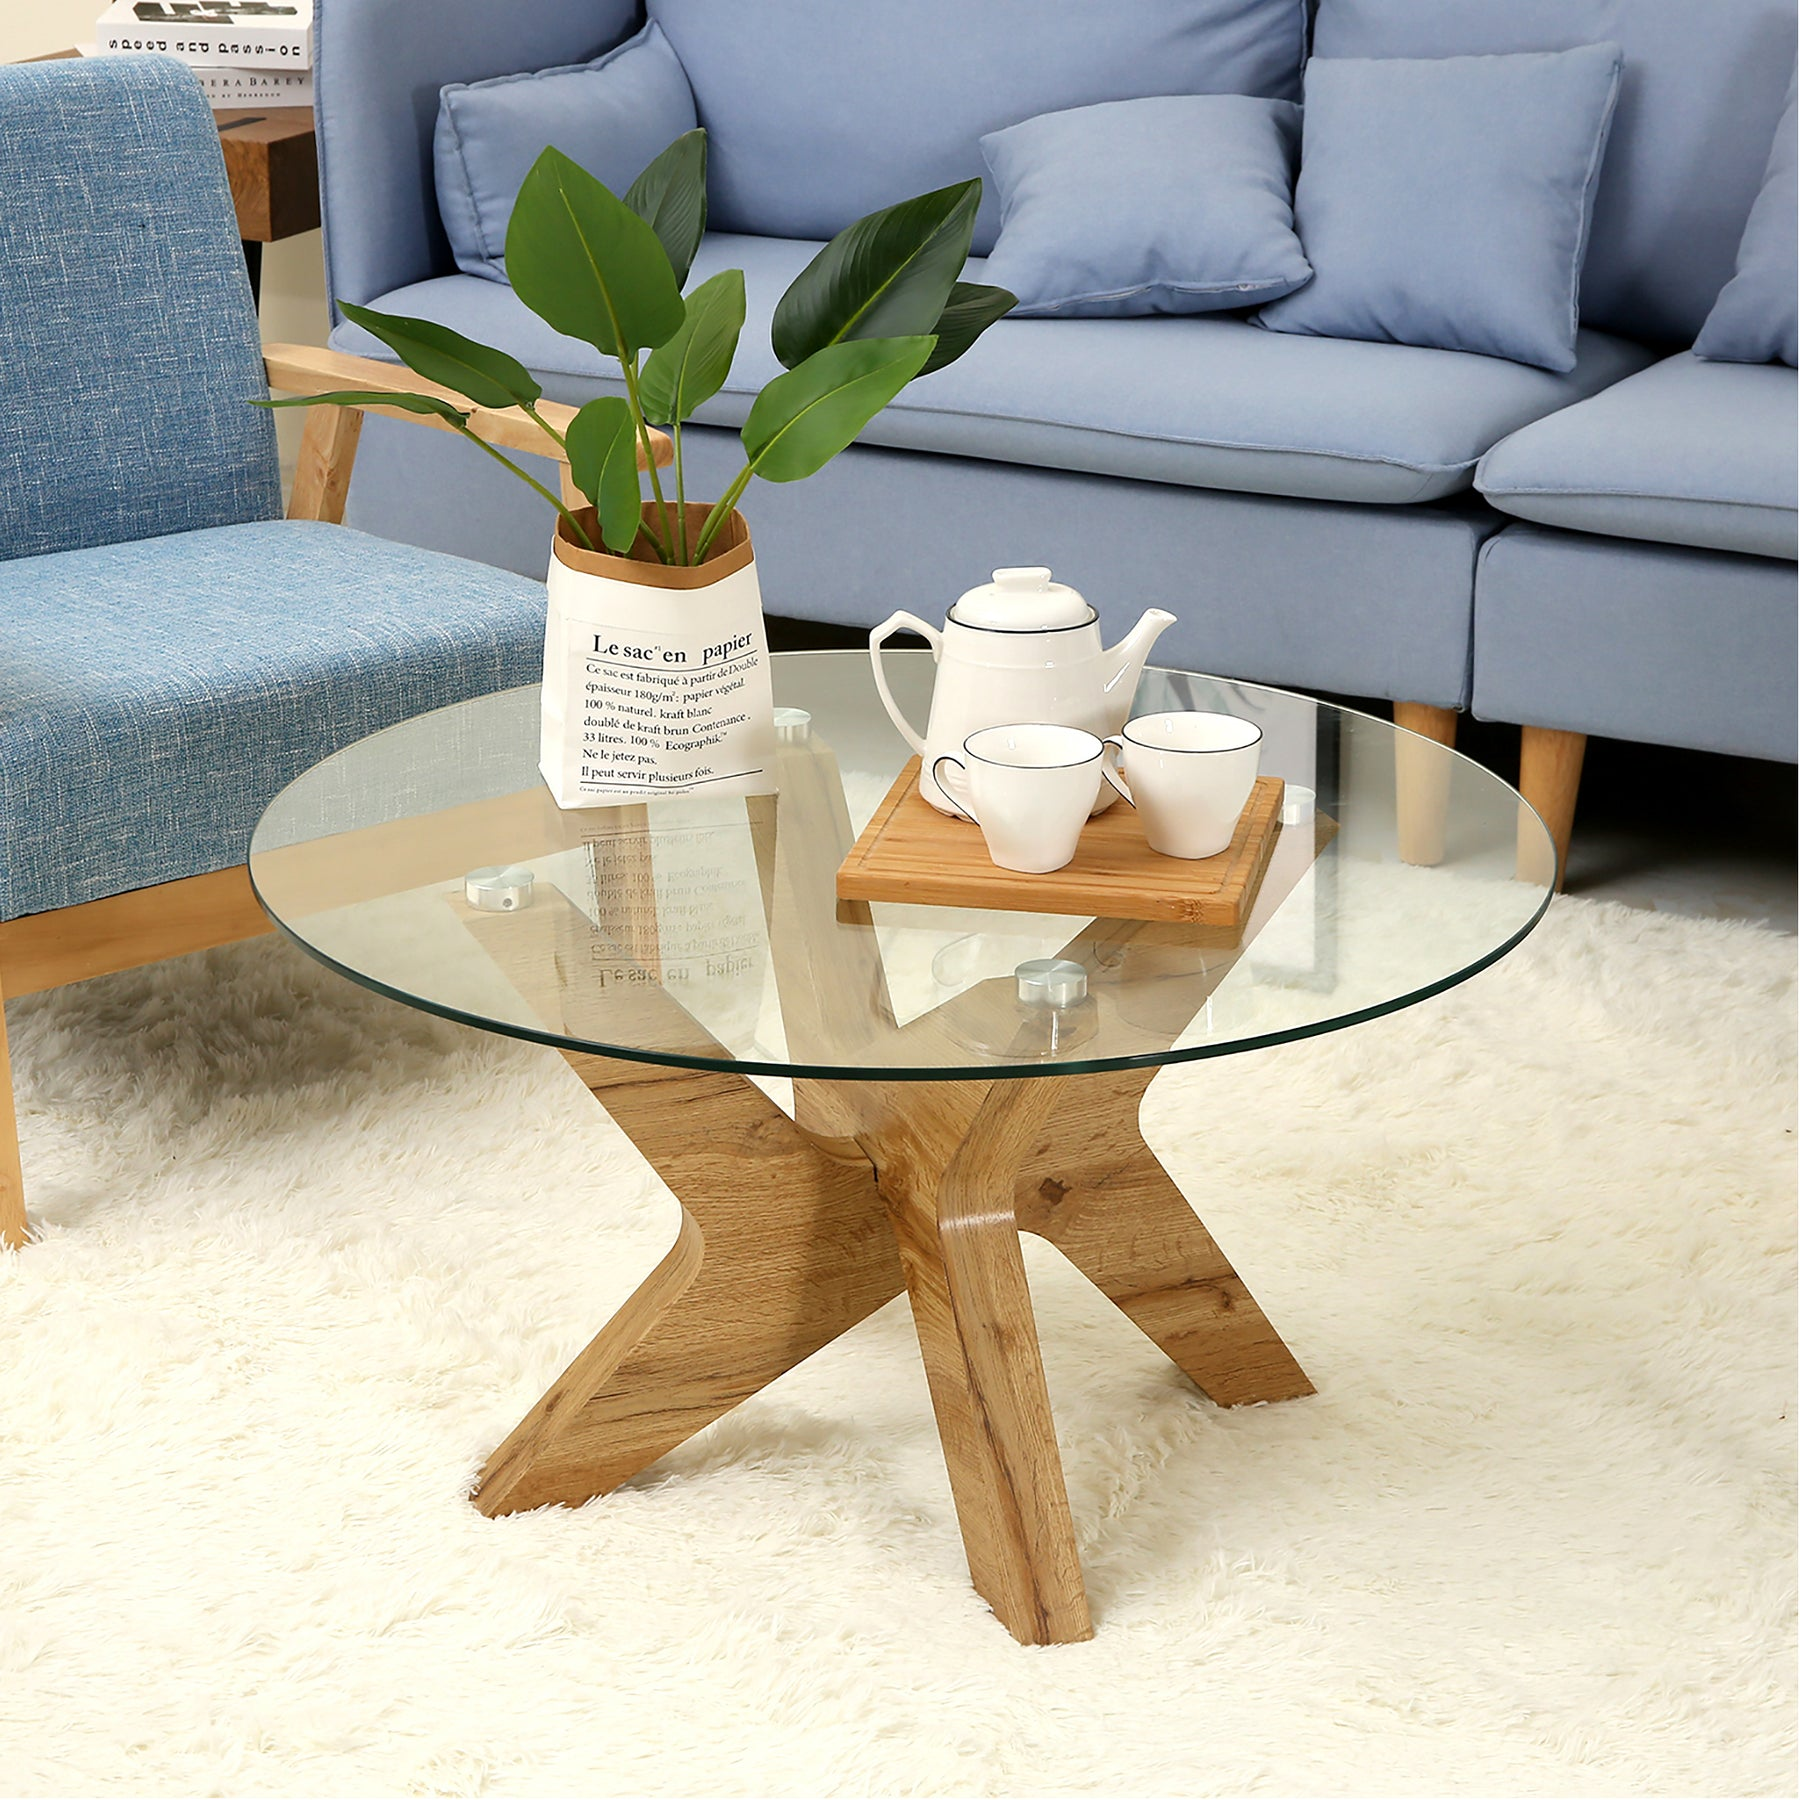 - Mcombo Modern Mid-Century Glass Round Coffee Table For Living Room